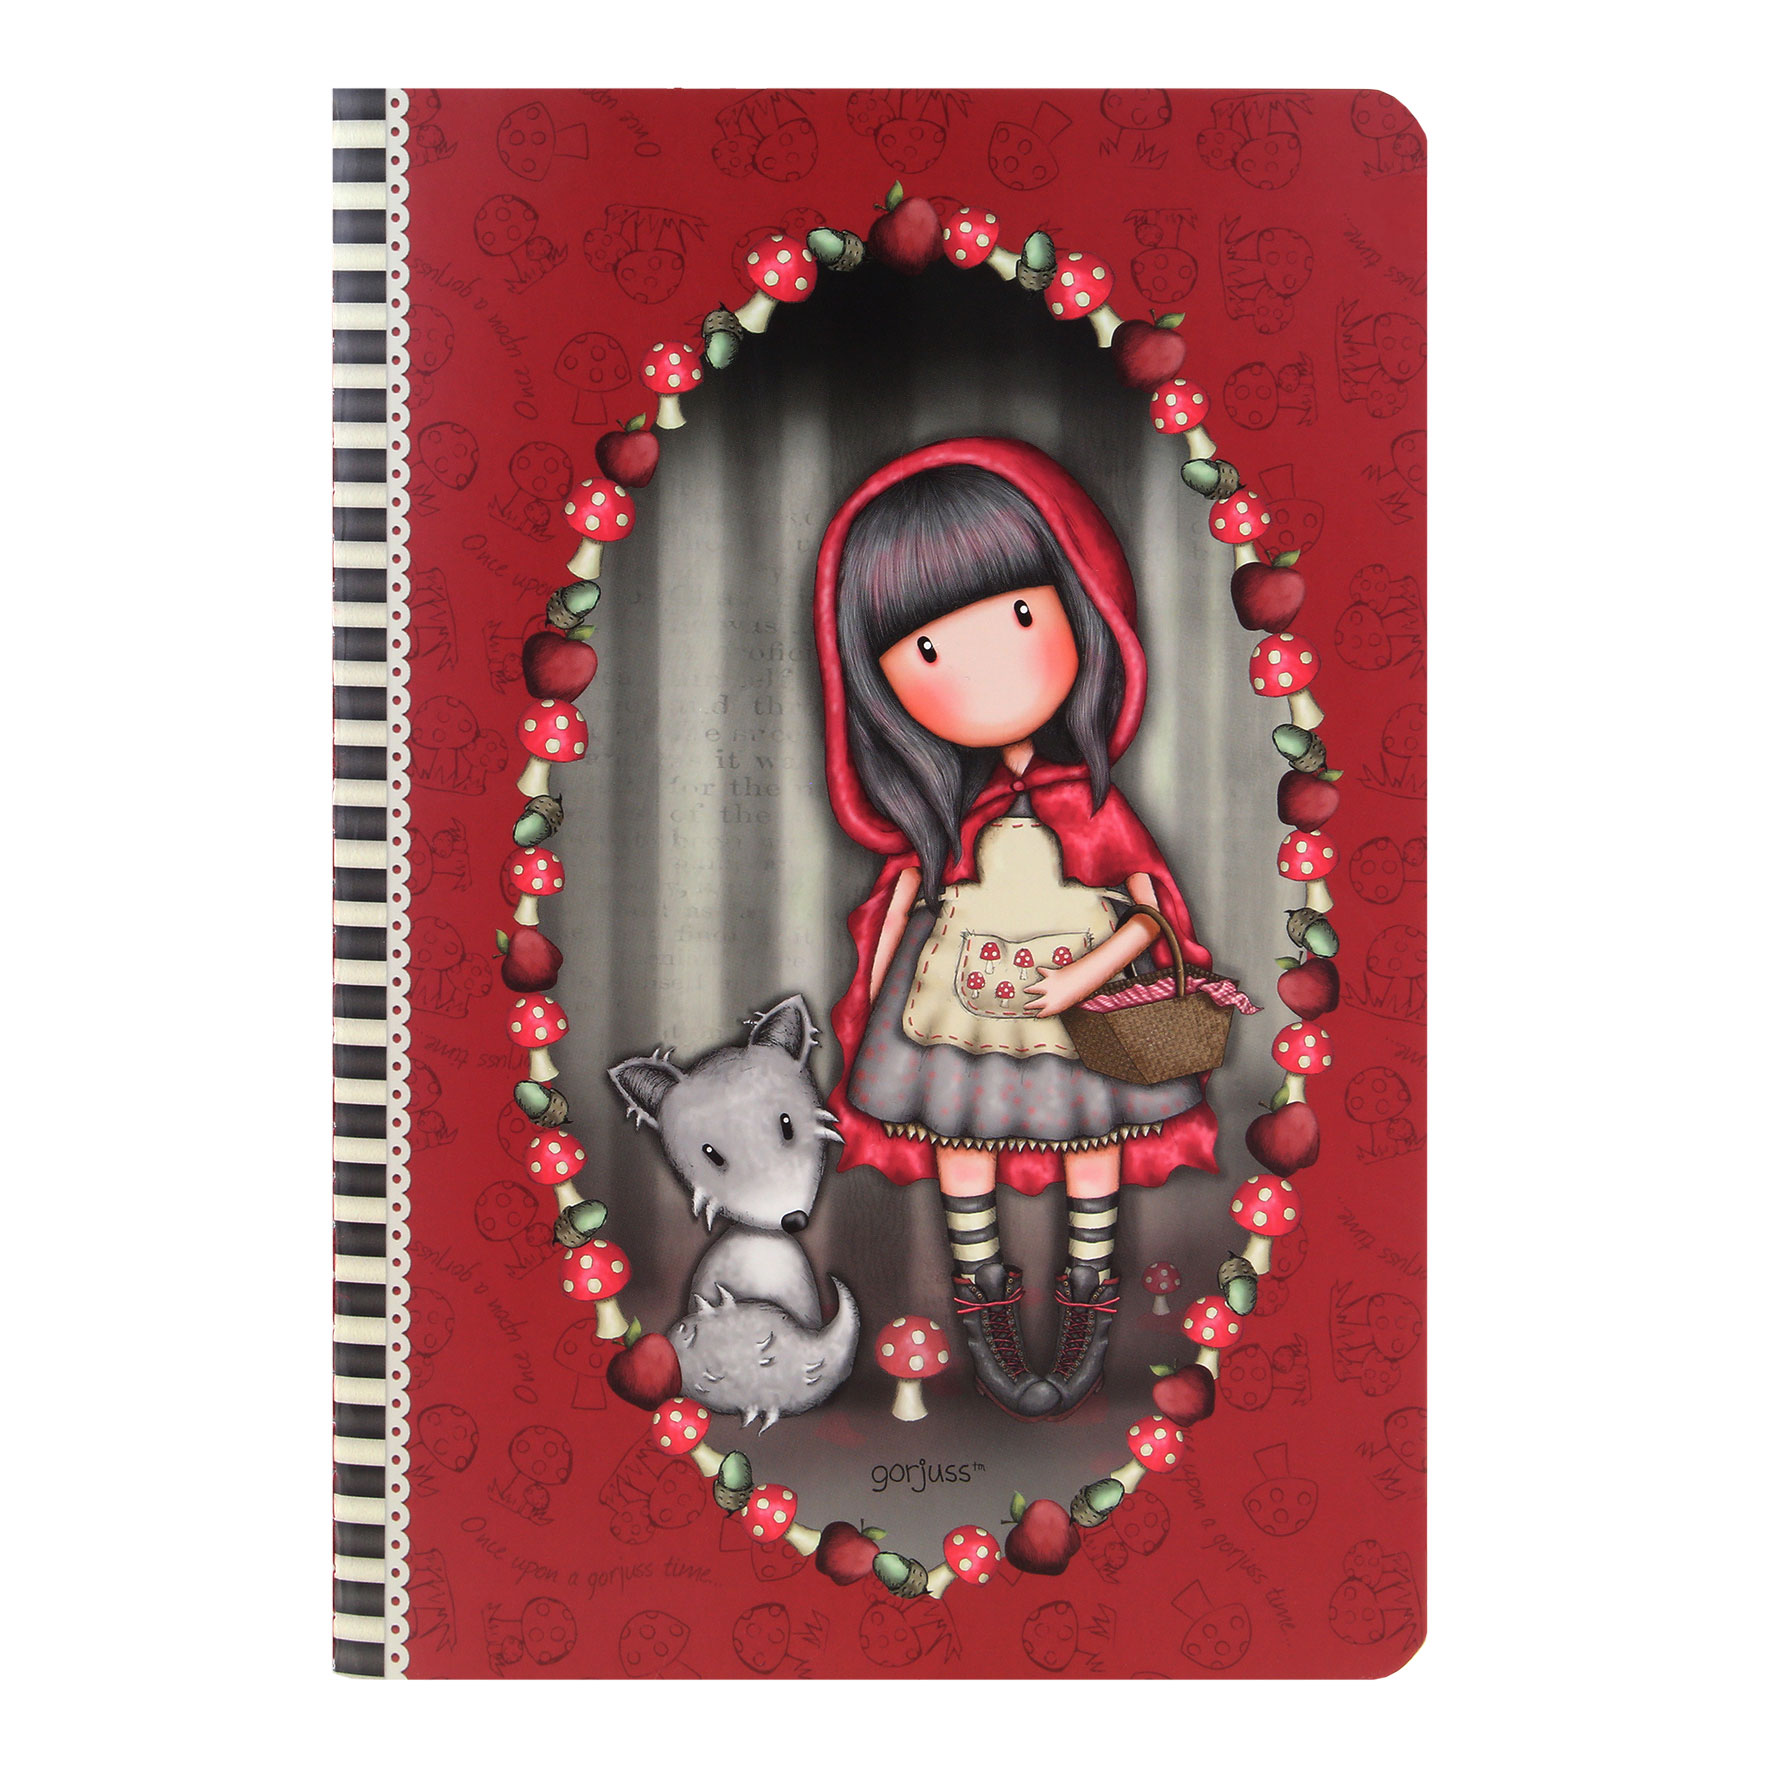 Santoro Gorjuss - Little Red Riding Hood - Zošit A5 s obalom